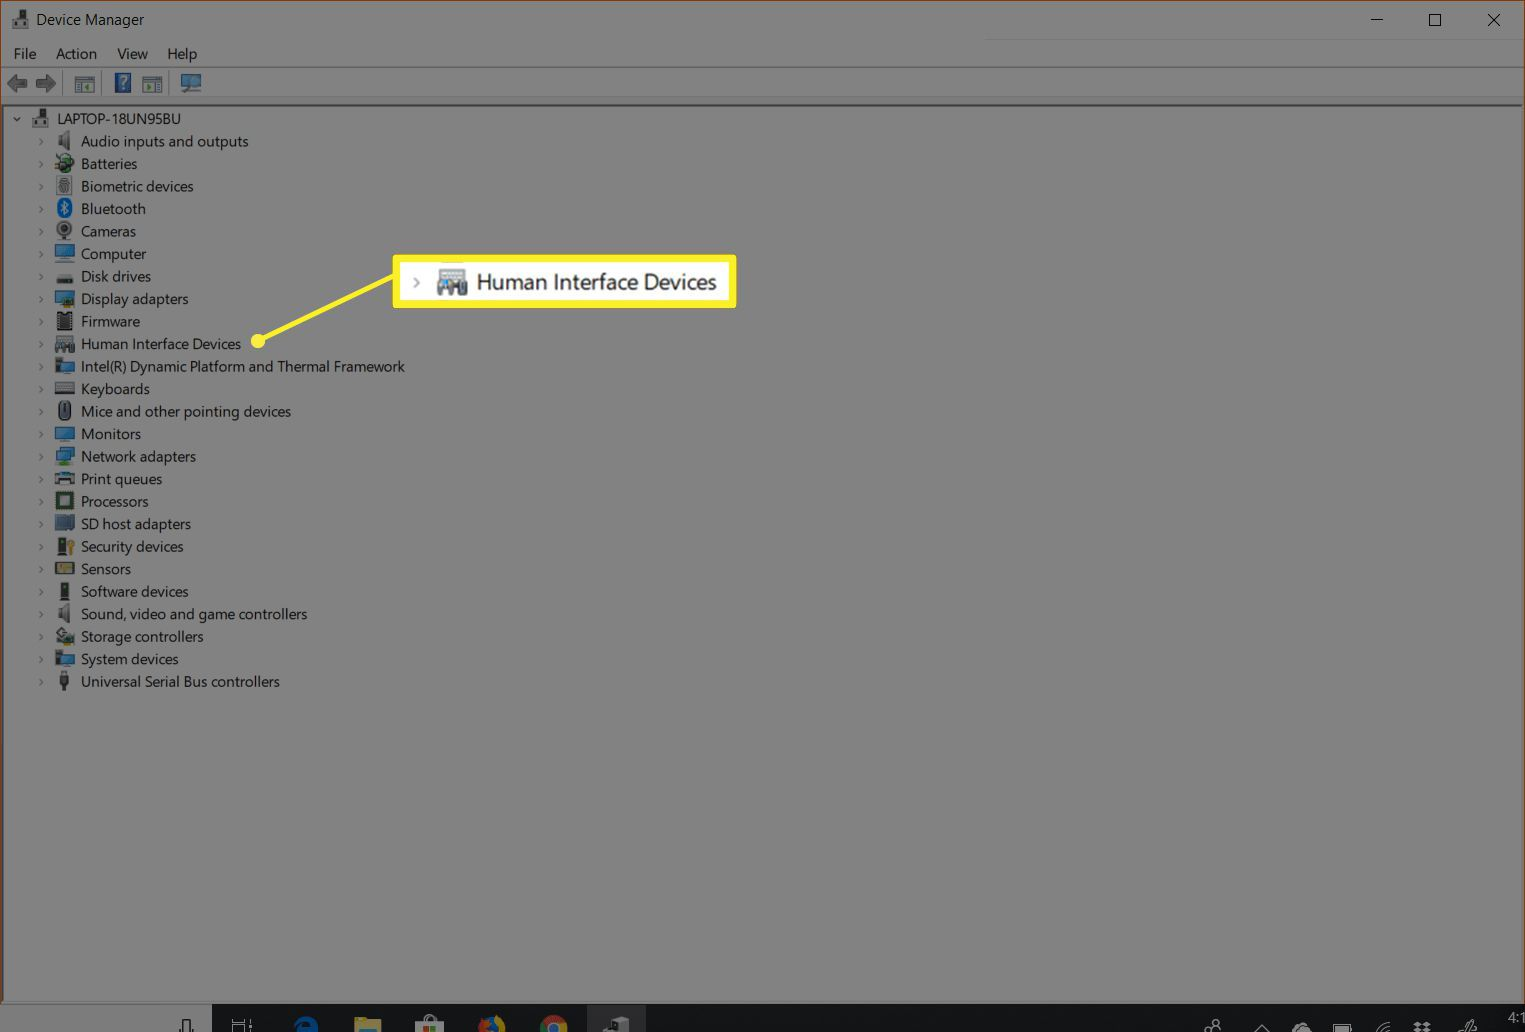 Human Interface Devices item in Device Manager